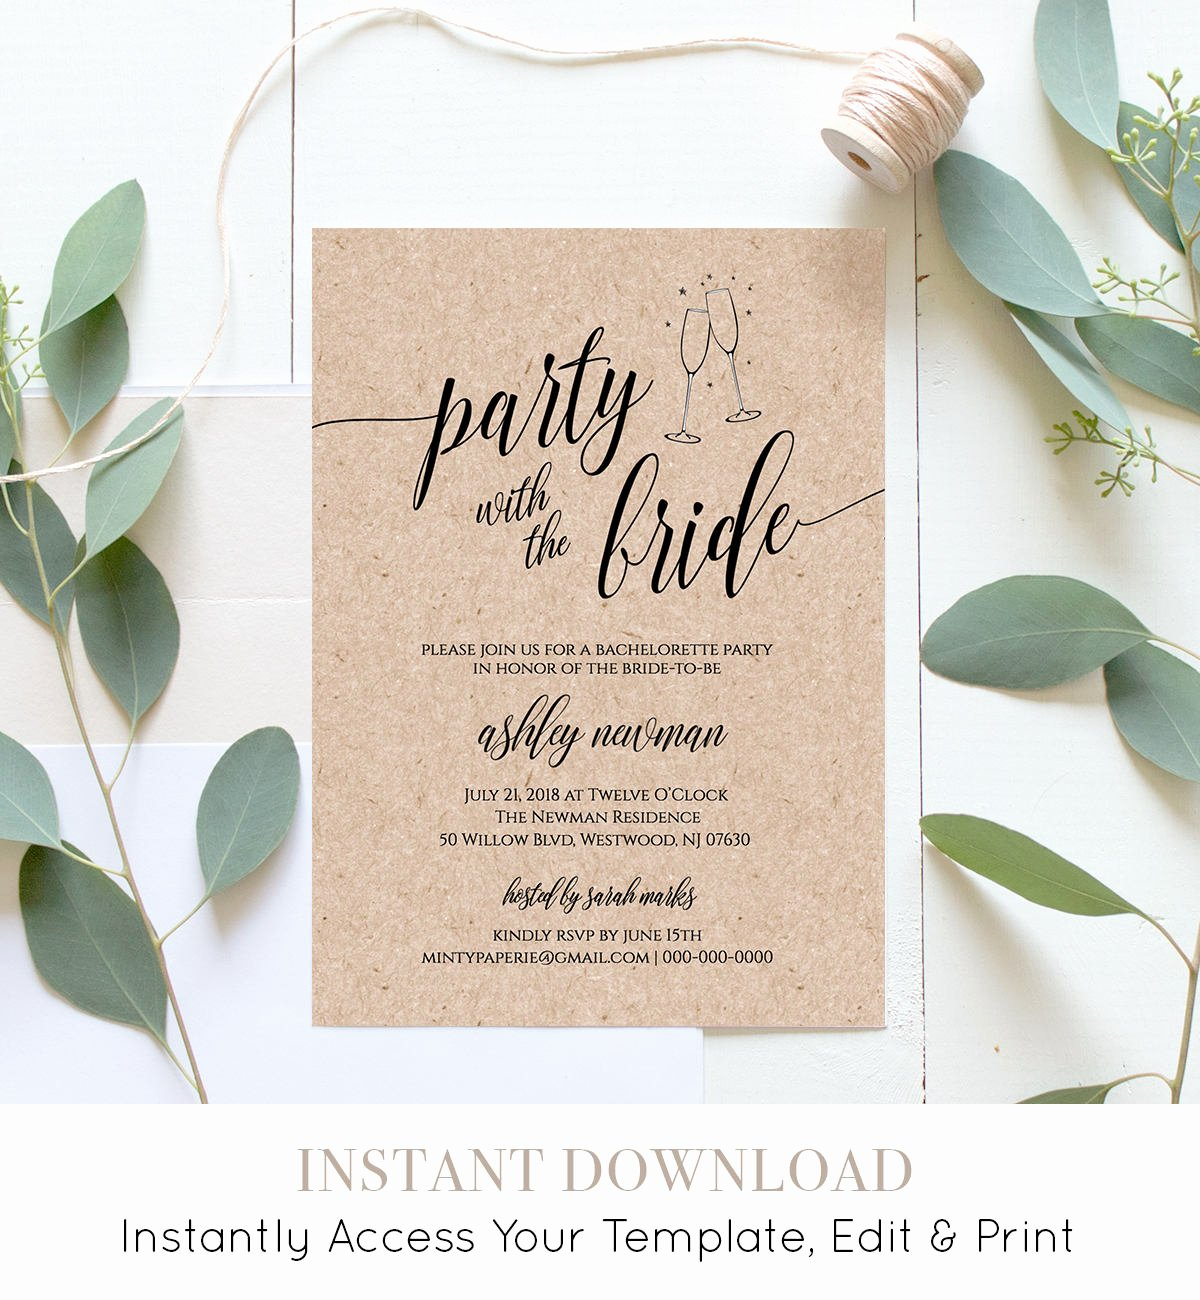 Bachelorette Party Invite Template Free Elegant Bachelorette Party Invitation & Itinerary Printable